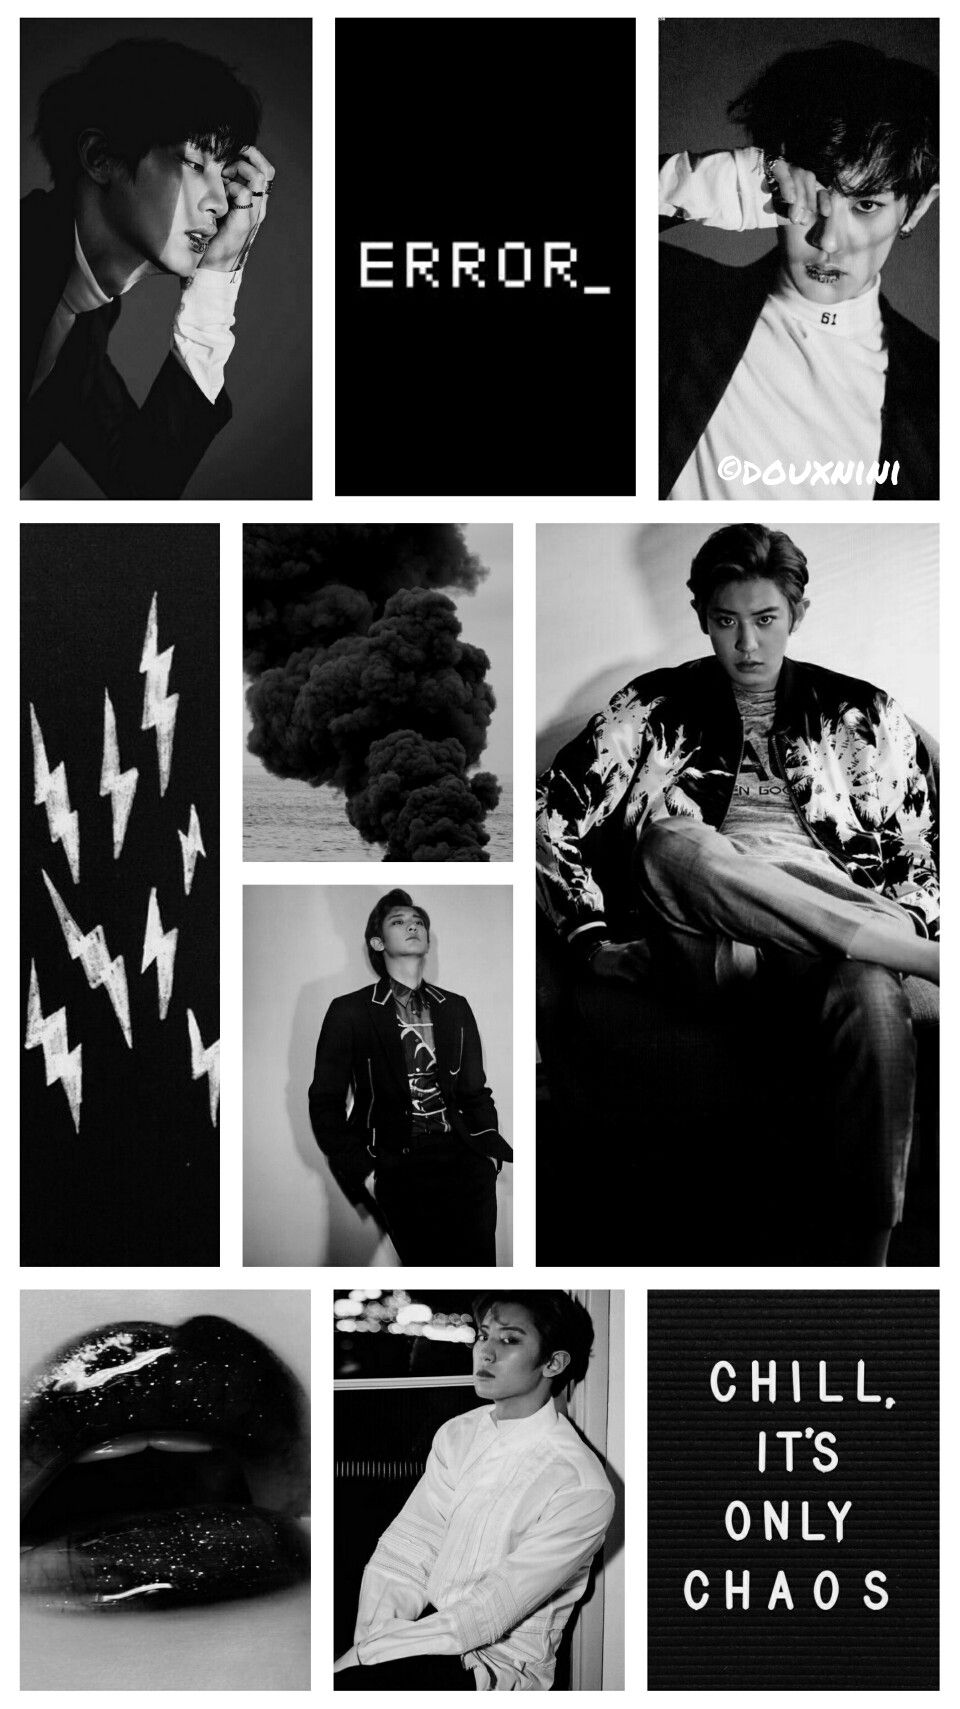 | Chanyeol x dark | [EXO]   Requests on my ig, link in bio from Uploaded by user